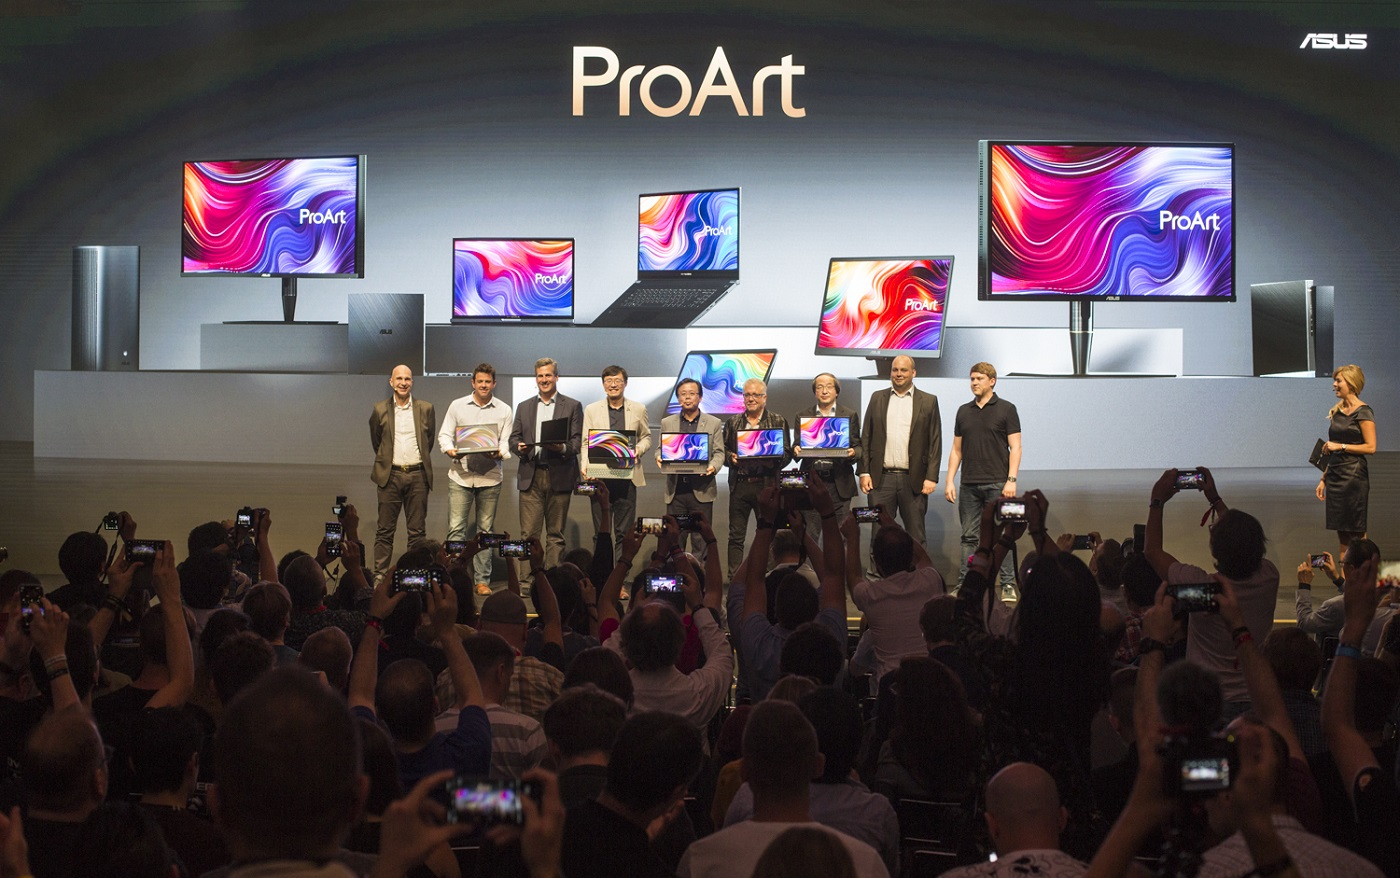 asus-announces-full-lineup-of-proart-family-with-partners-and-guests-jpg.8059